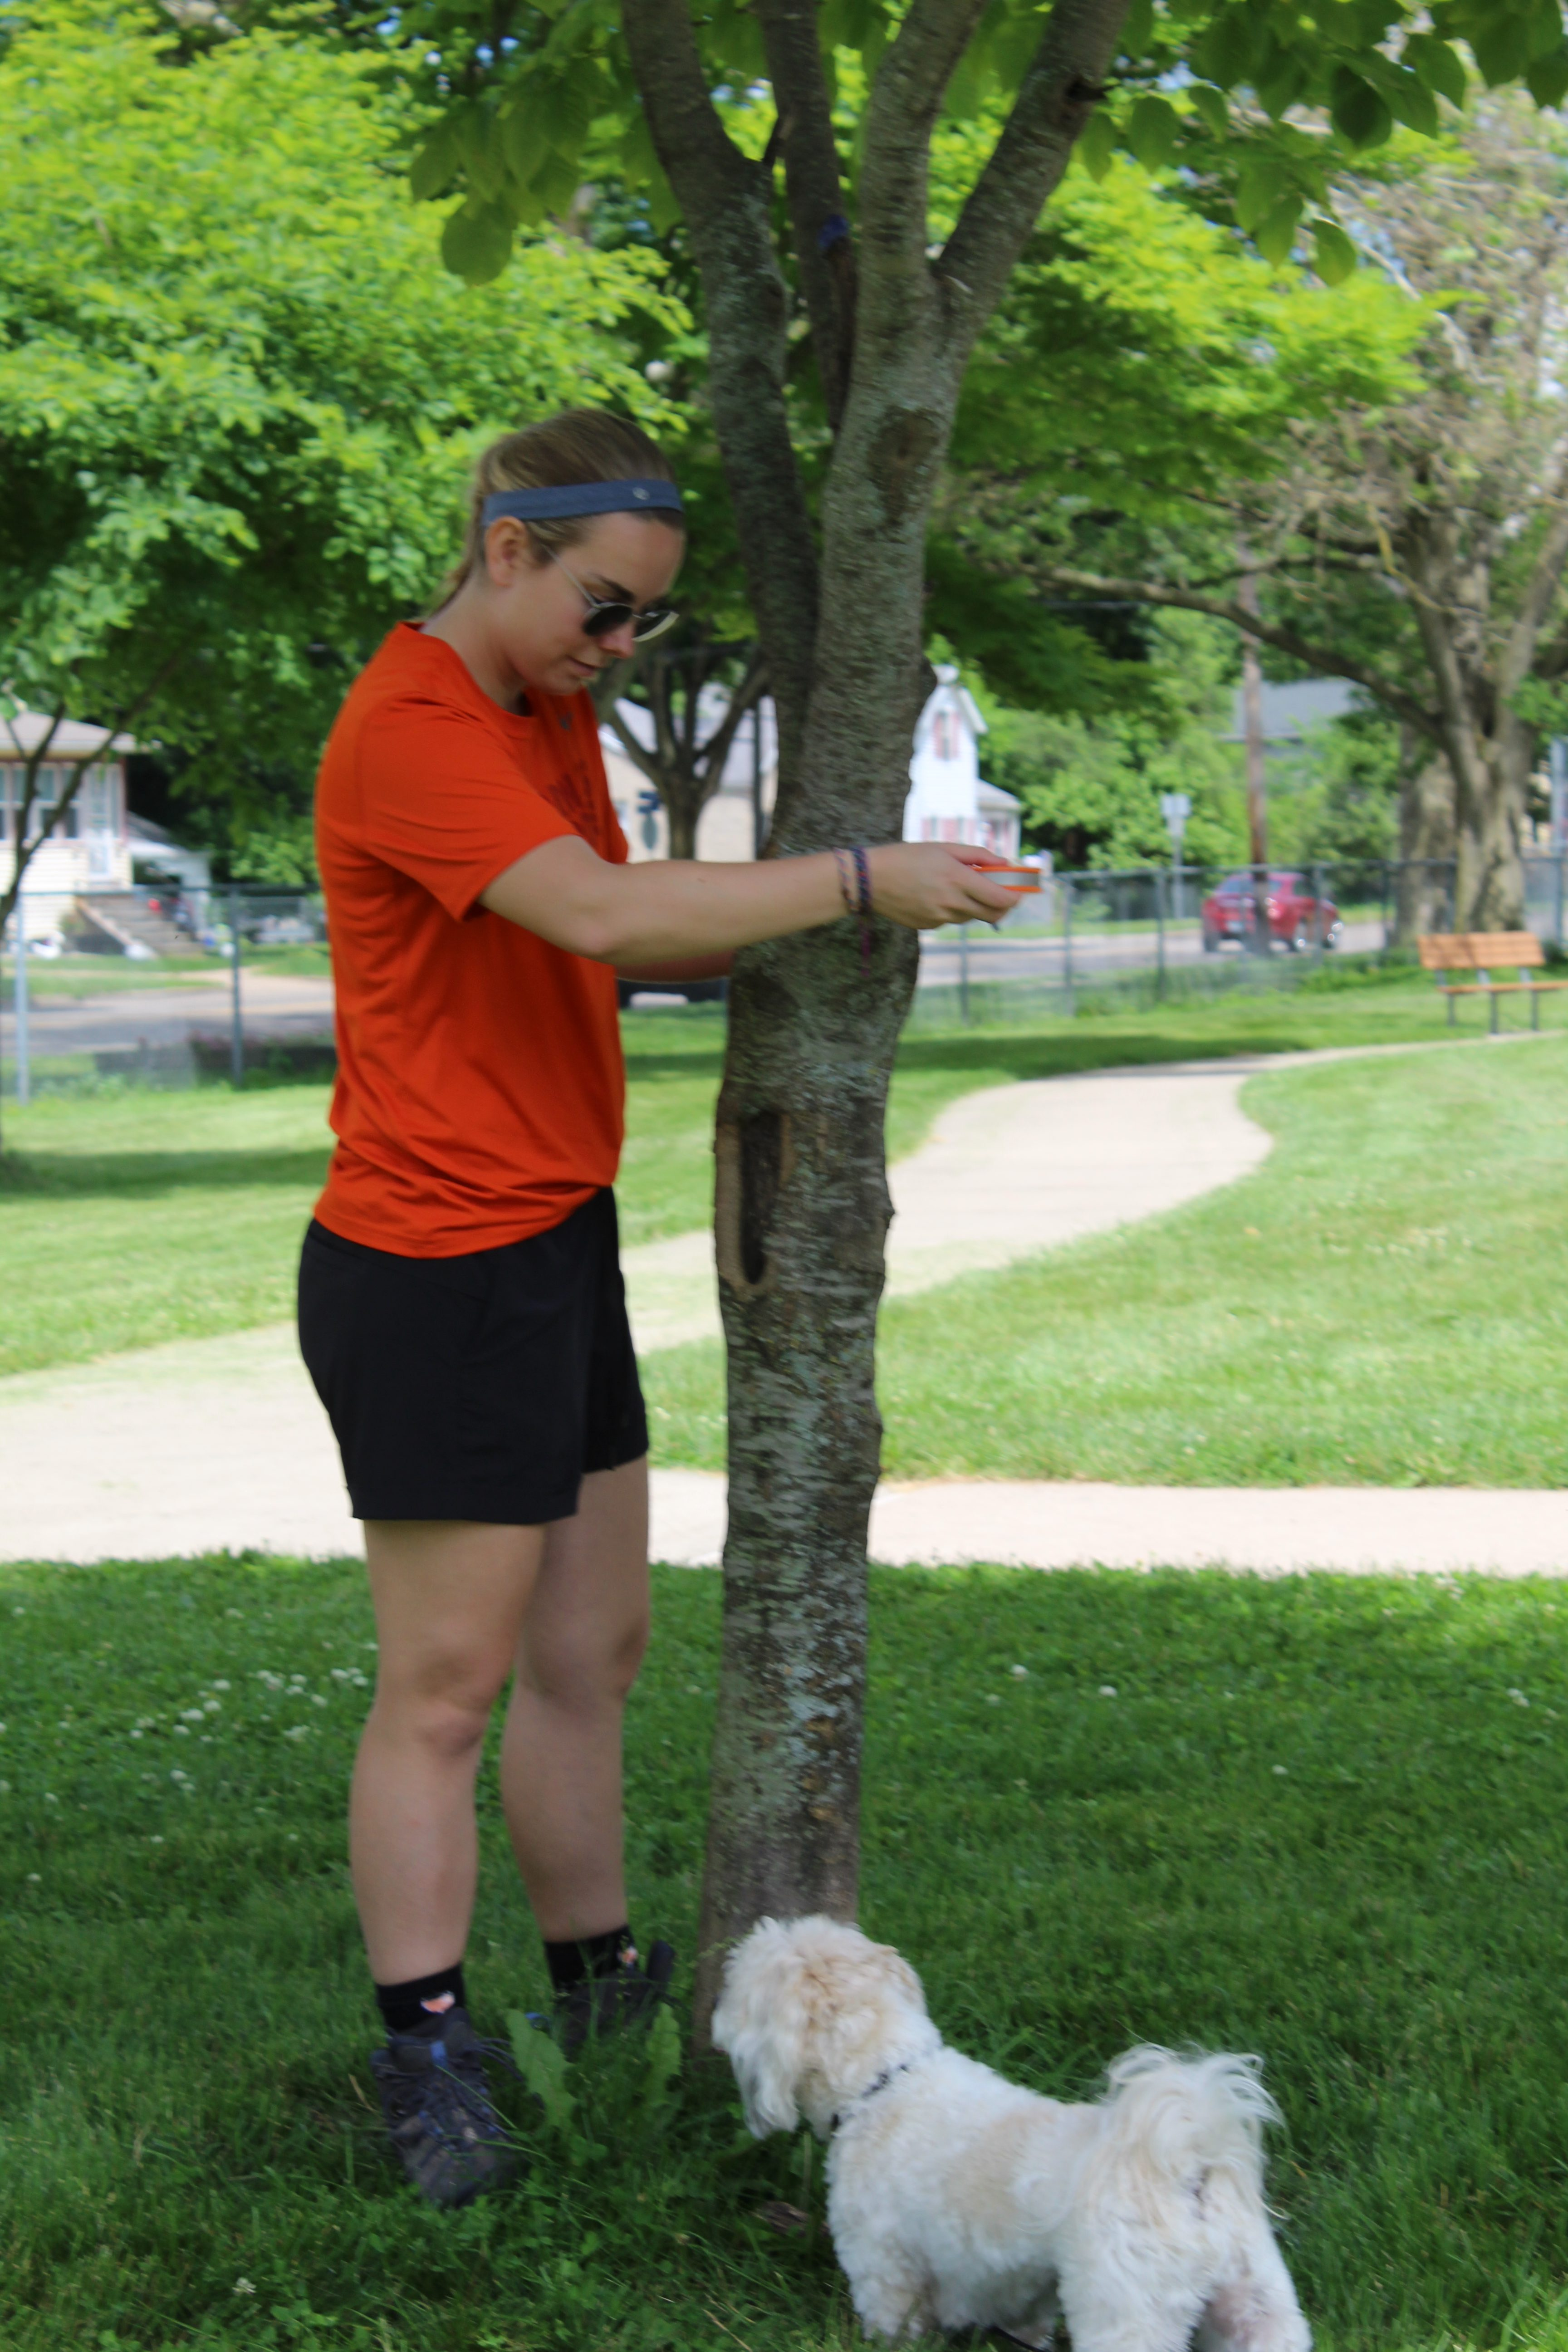 Student measuring tree diameter in a city park